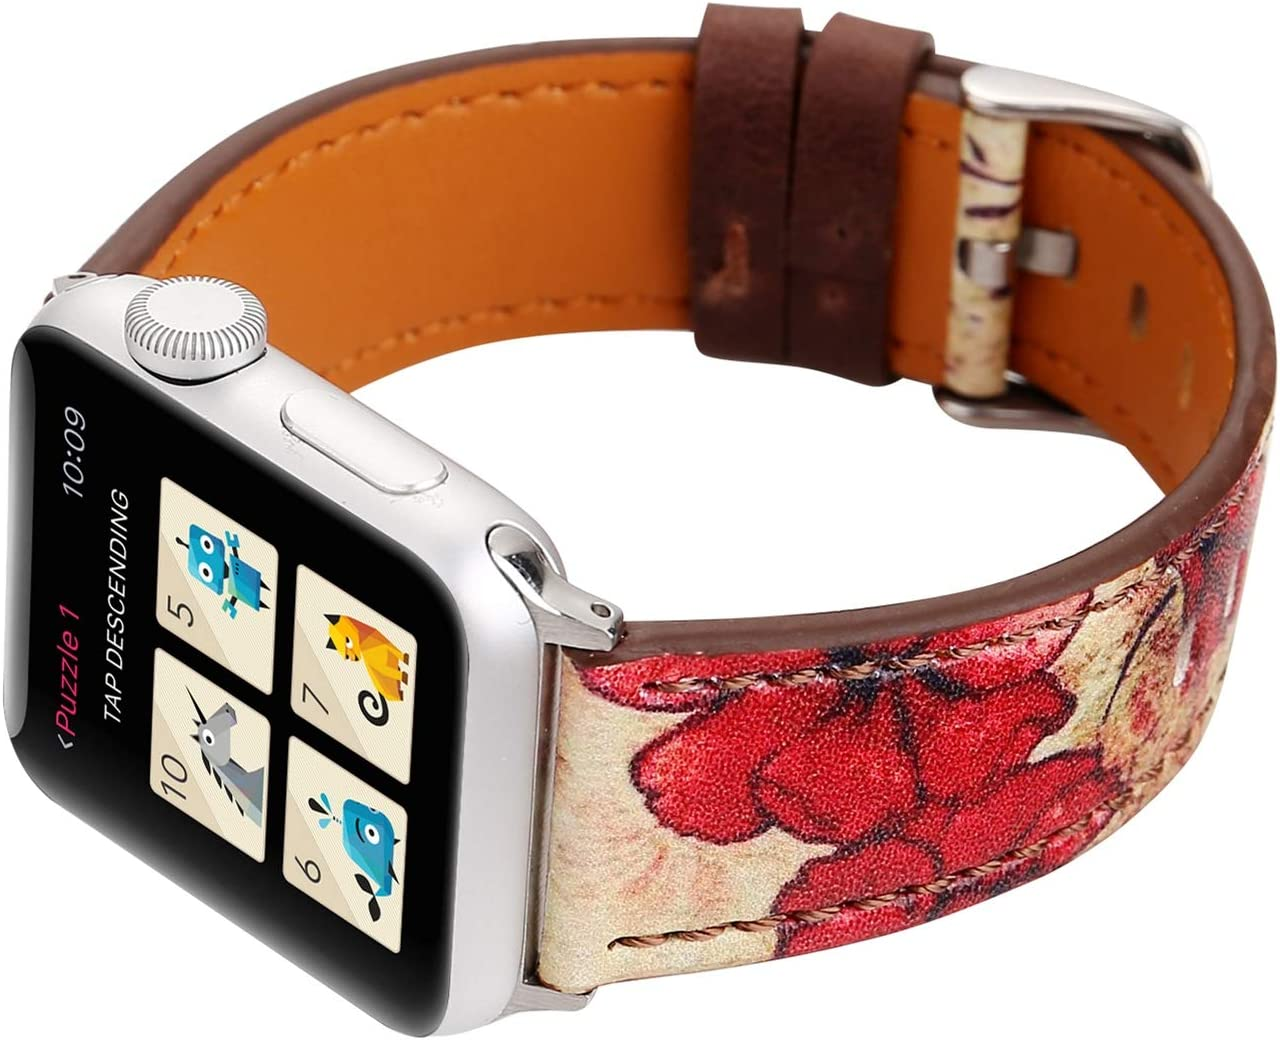 Compatible with Apple Watch Band 42mm 44mm, [Red Floral Flower] Vintage Print Soft Leather Watch Strap Replacement Wristband Bracelet for Apple Watch Series 5 4 (44mm) Series 3 2 1 (42mm)